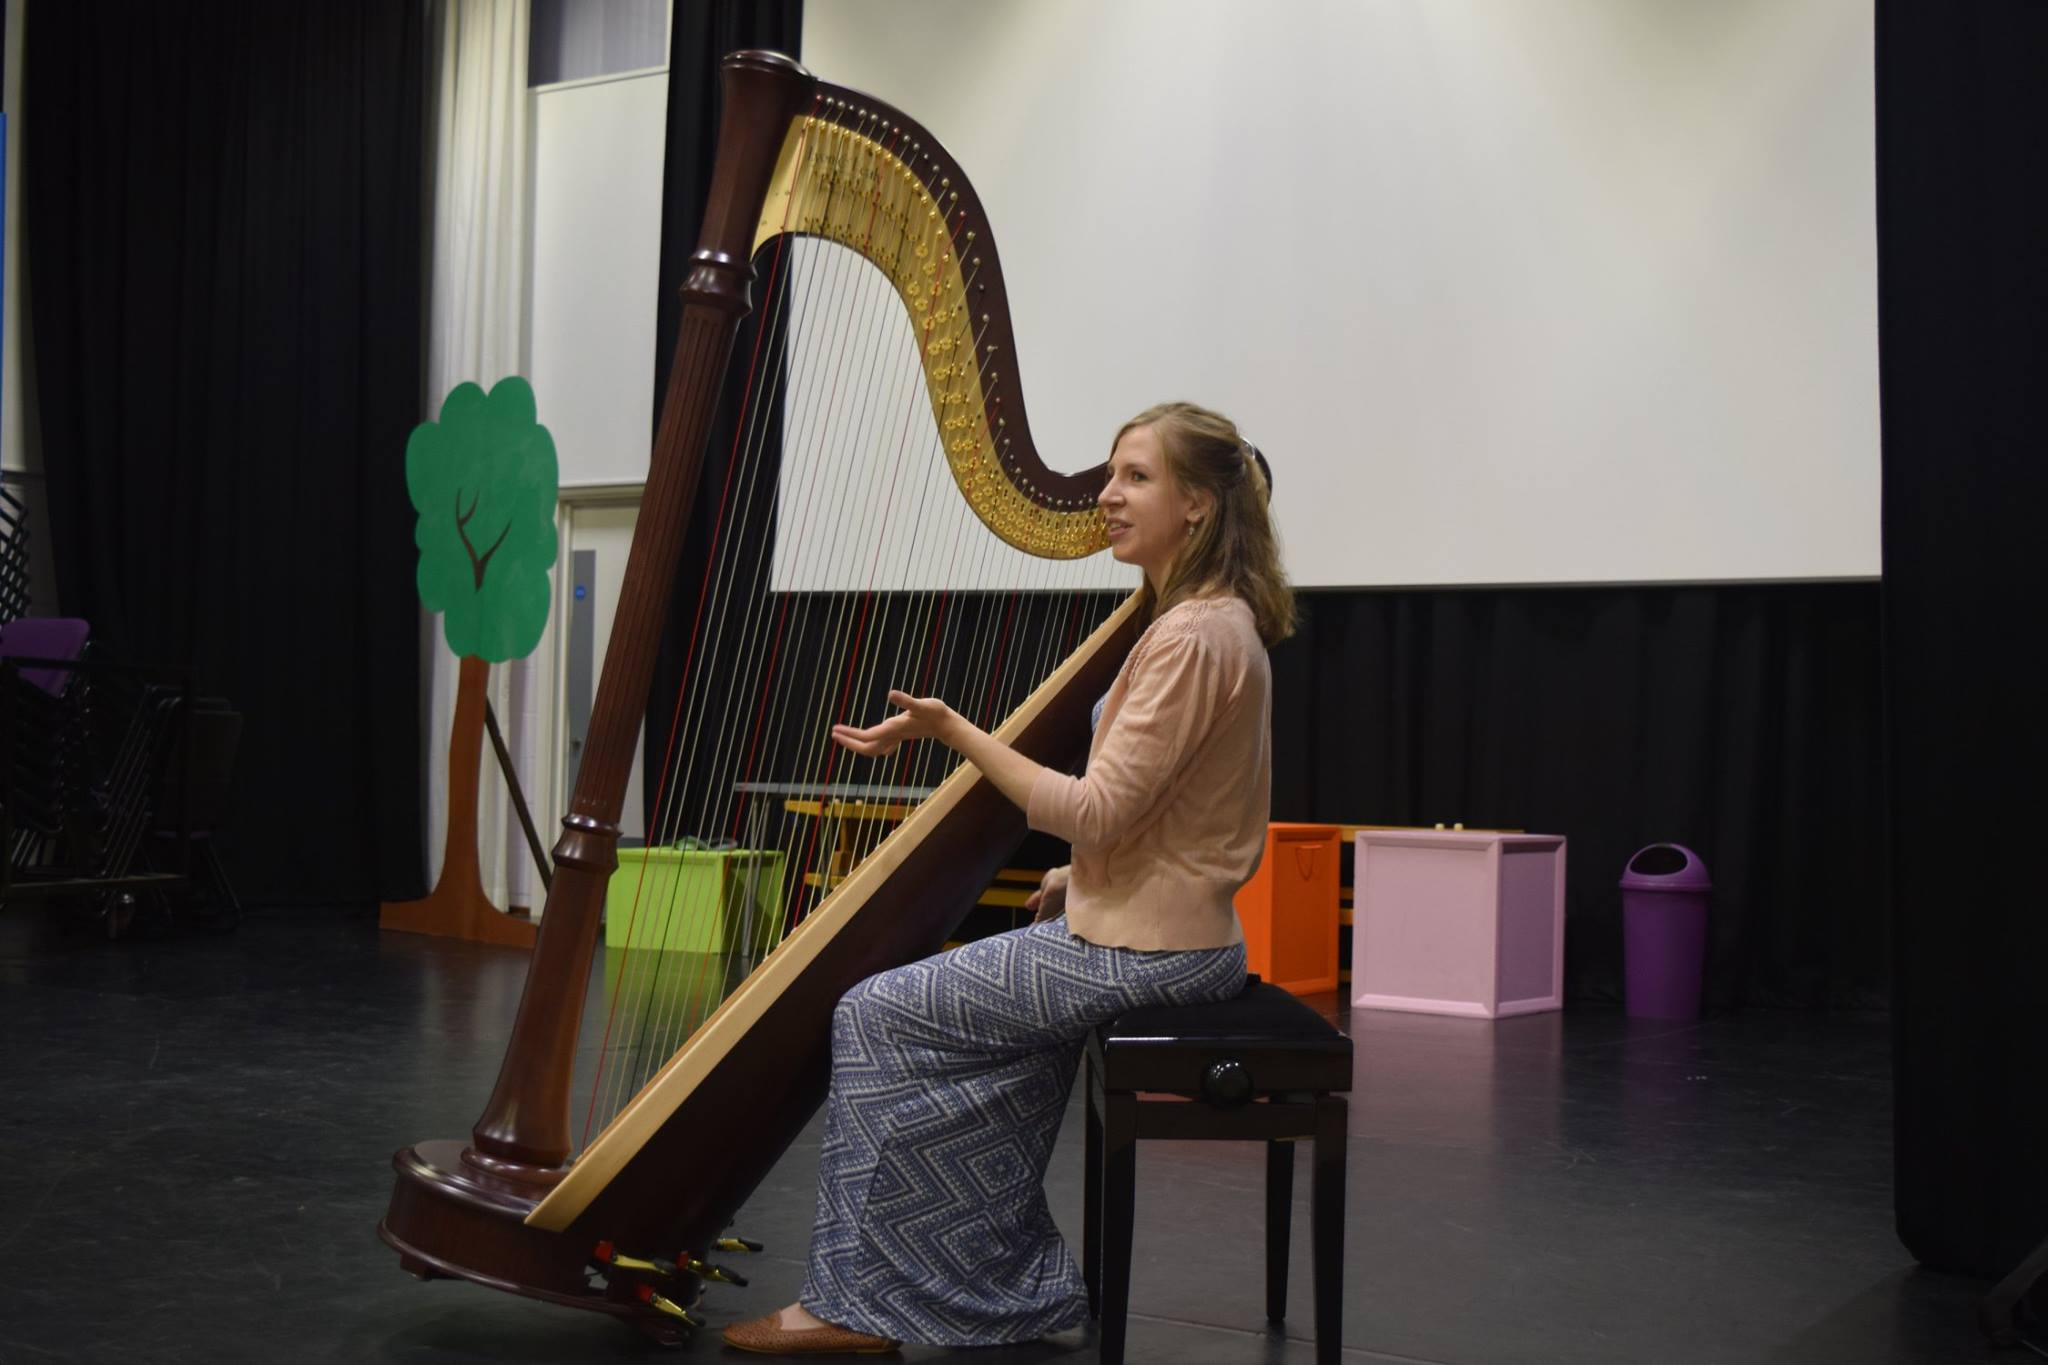 School Harp Demonstration